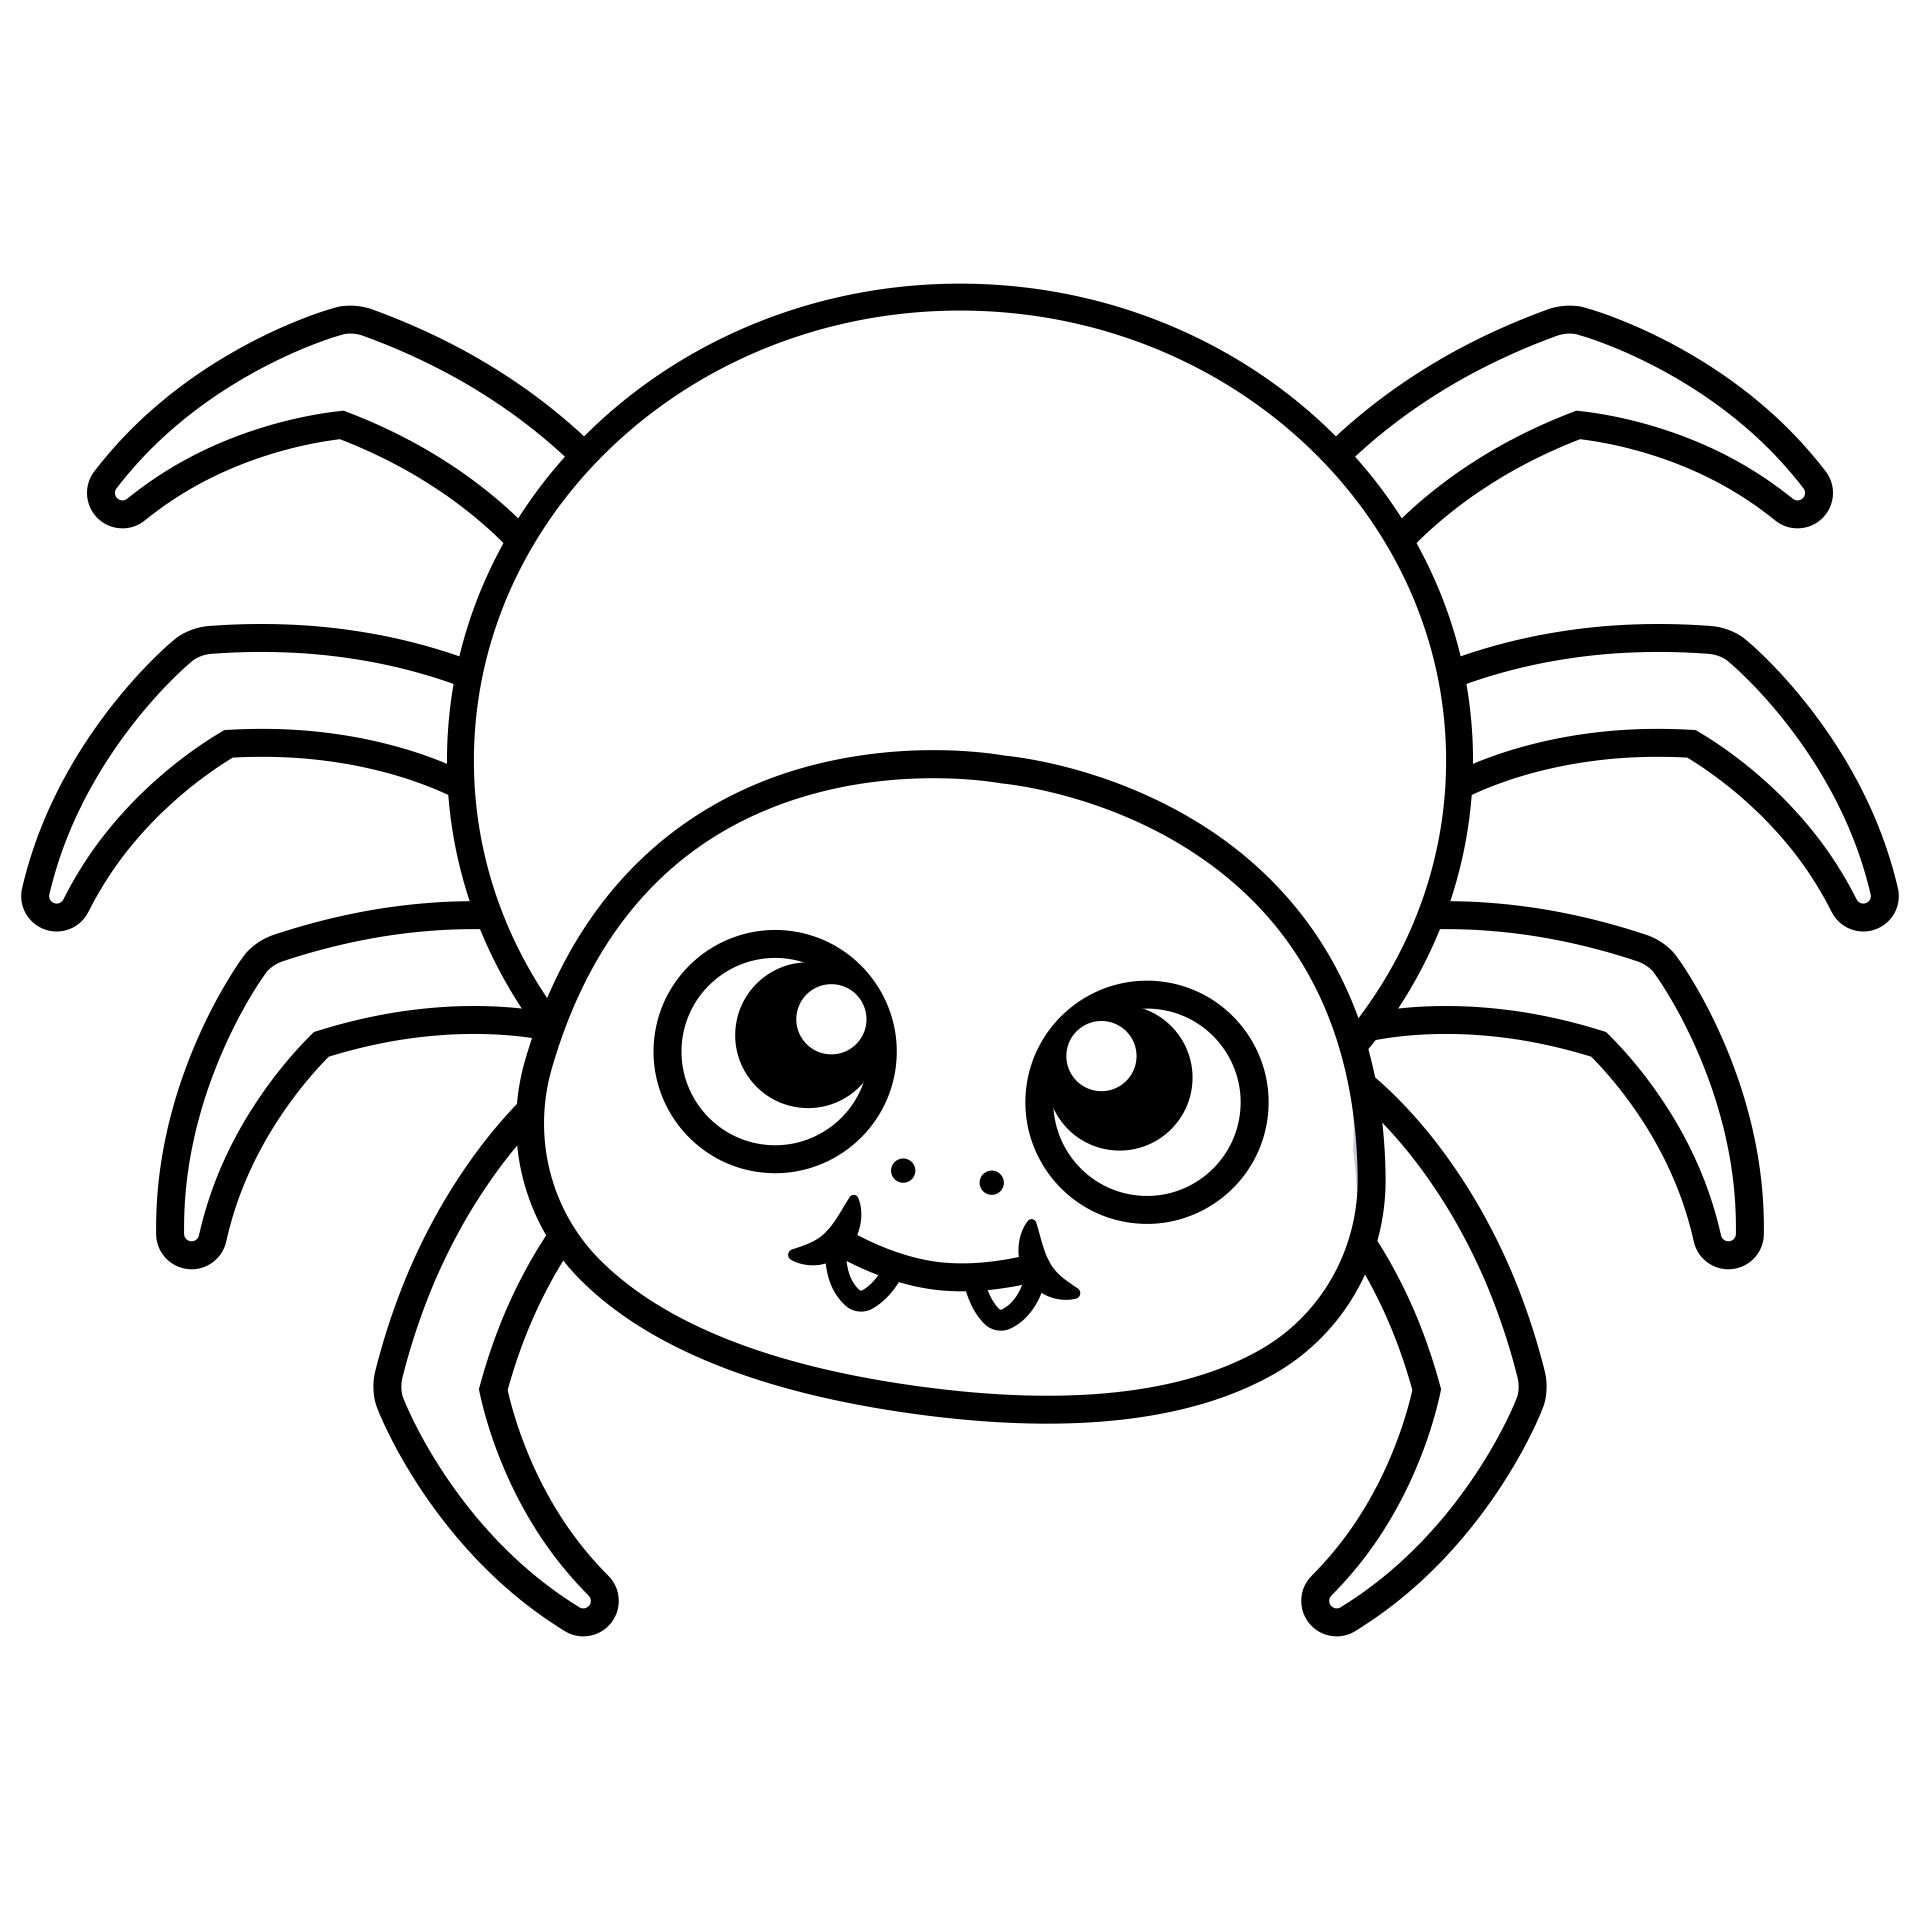 5 Images of Printable Halloween Spider Coloring Pages